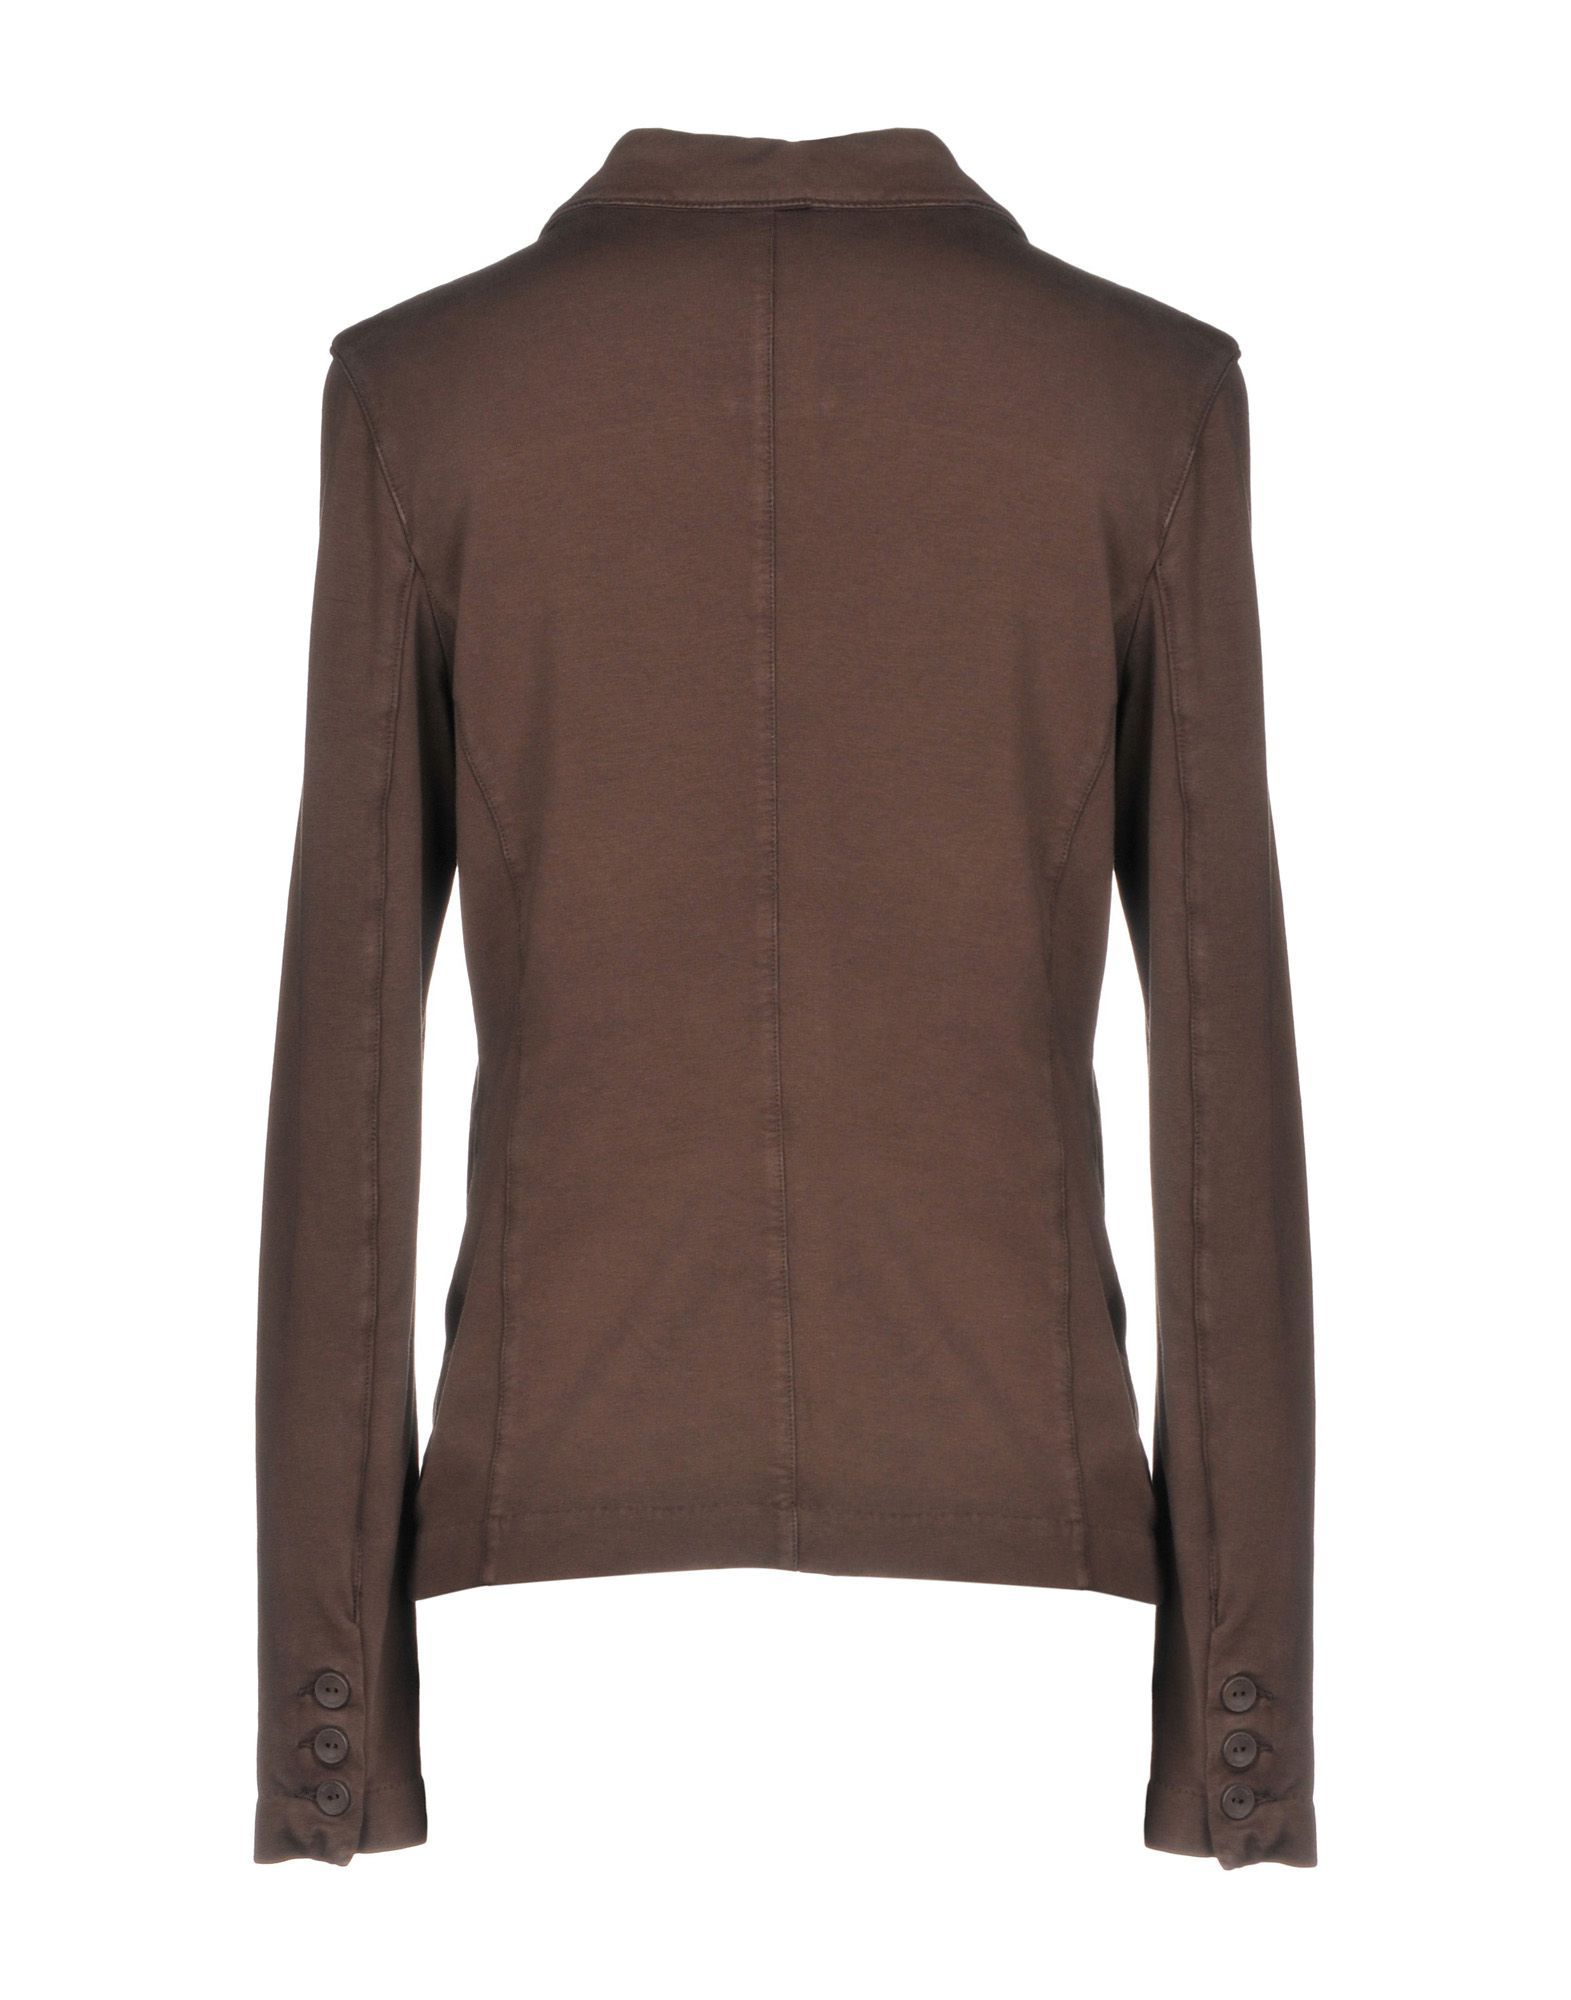 SUITS AND JACKETS European Culture Dark brown Woman Cotton